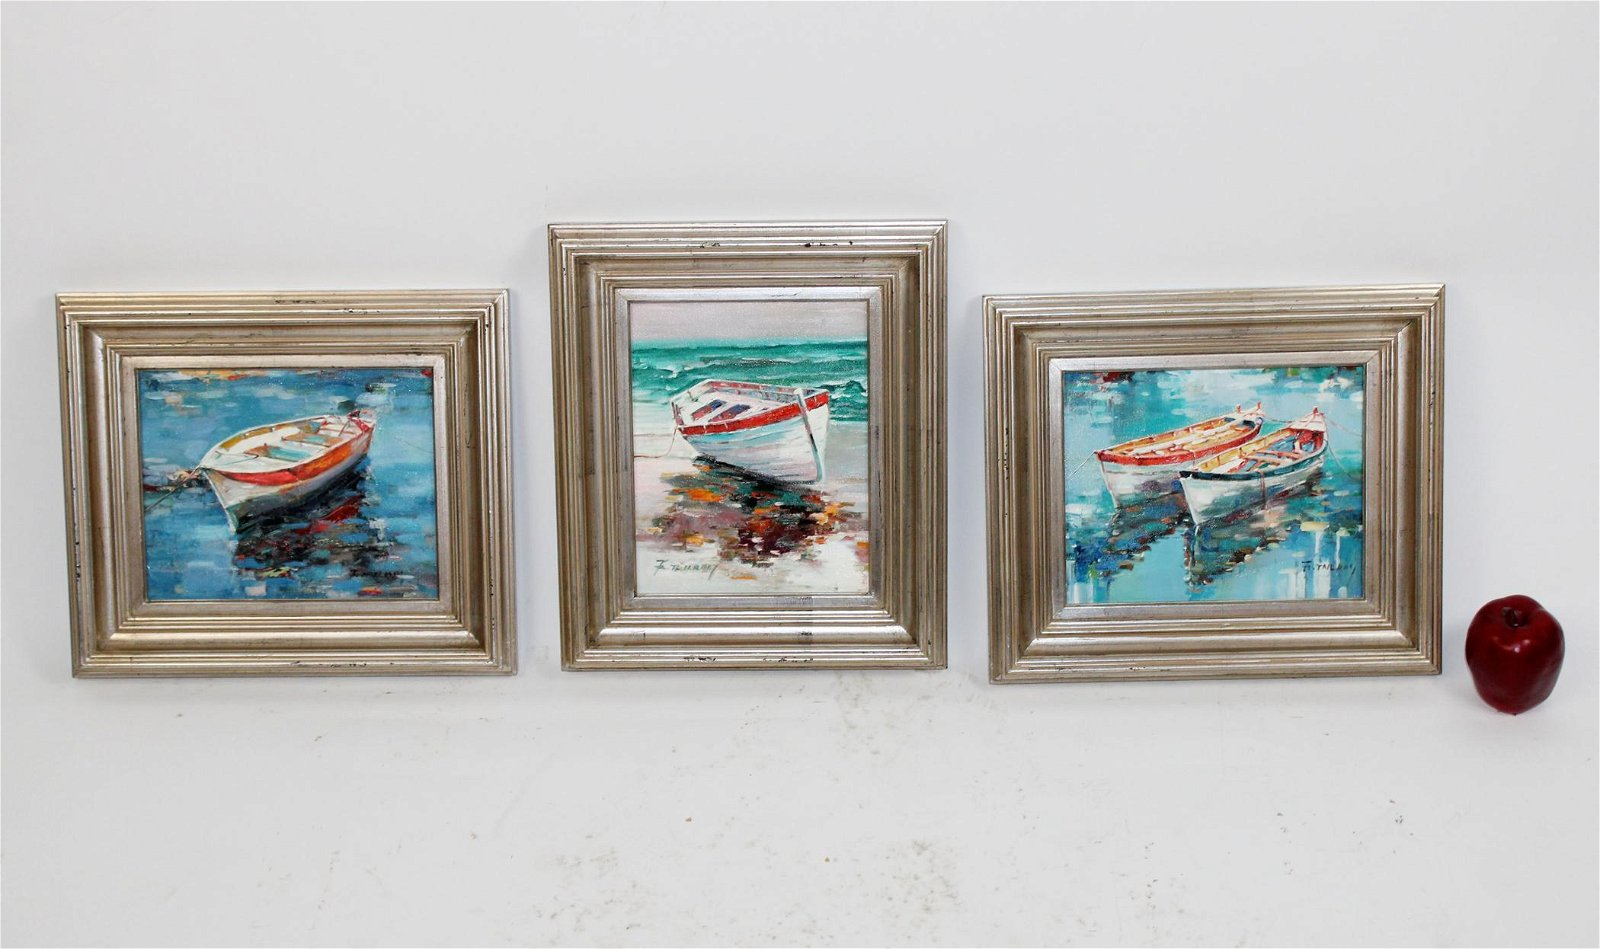 3 oil paintings depicting boats